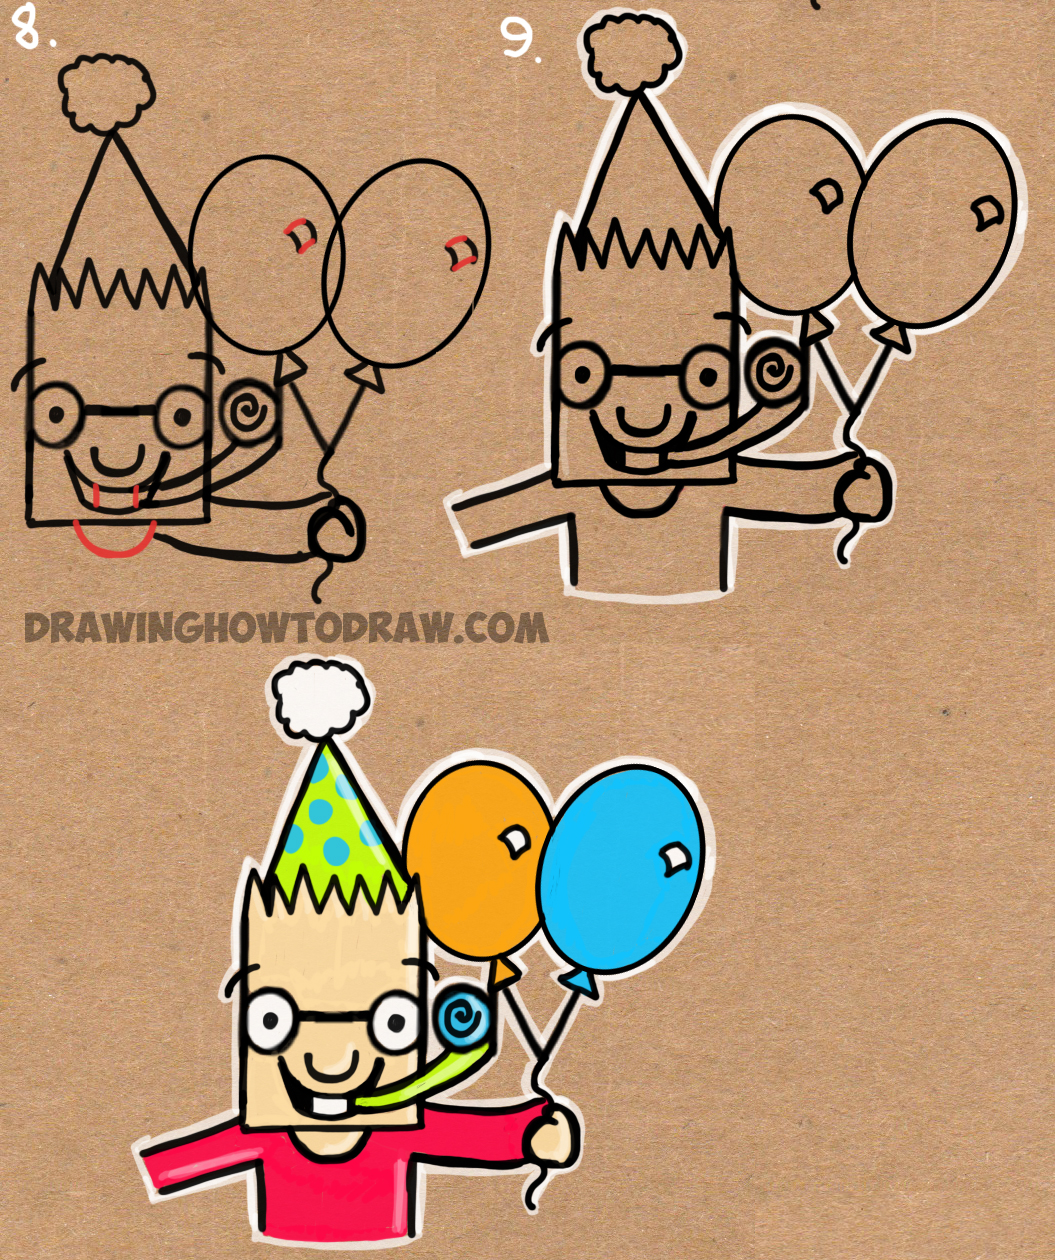 a birthday party drawing ; howtodrawhappybirthdaypicturefromb-day-word2